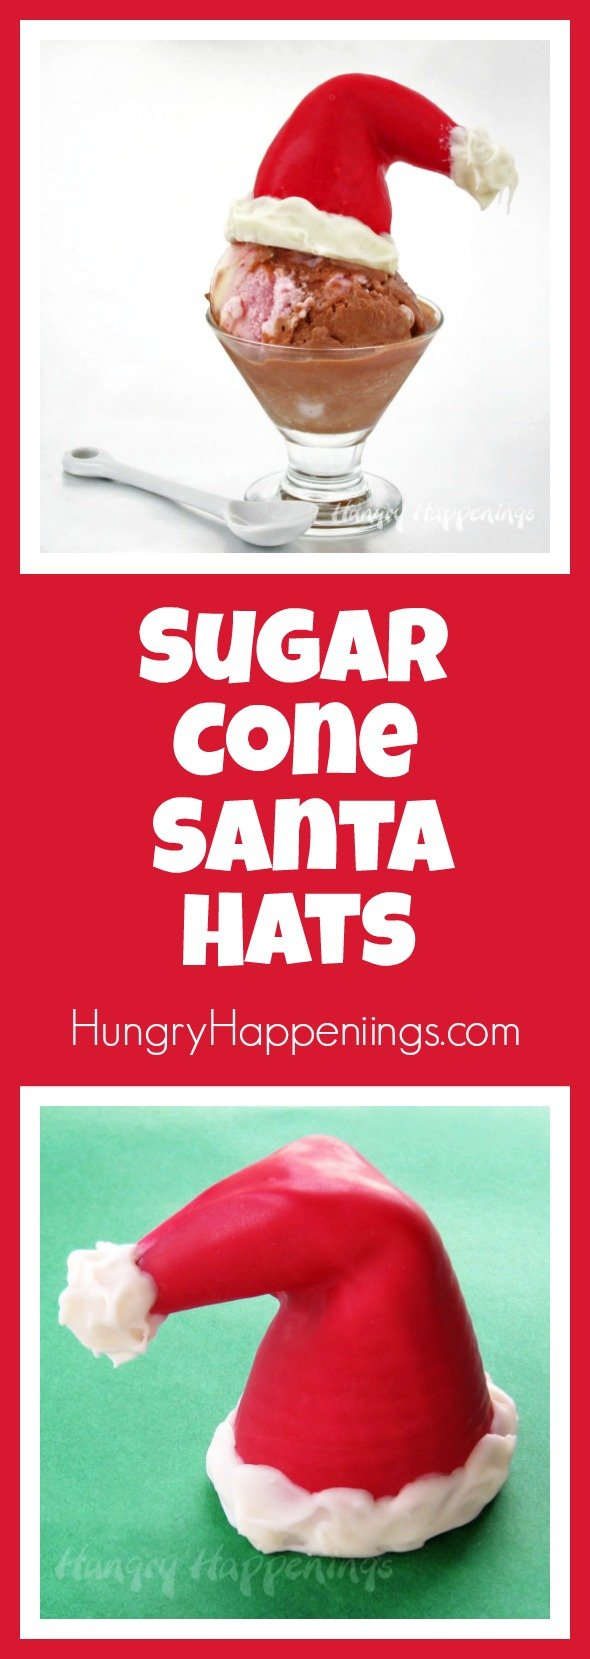 Did you know that you can bend store bought ice cream cones into adorable Sugar Cone Santa Hats? How fun would it be this Christmas to surprise your guests with these treats straight from the North Pole?